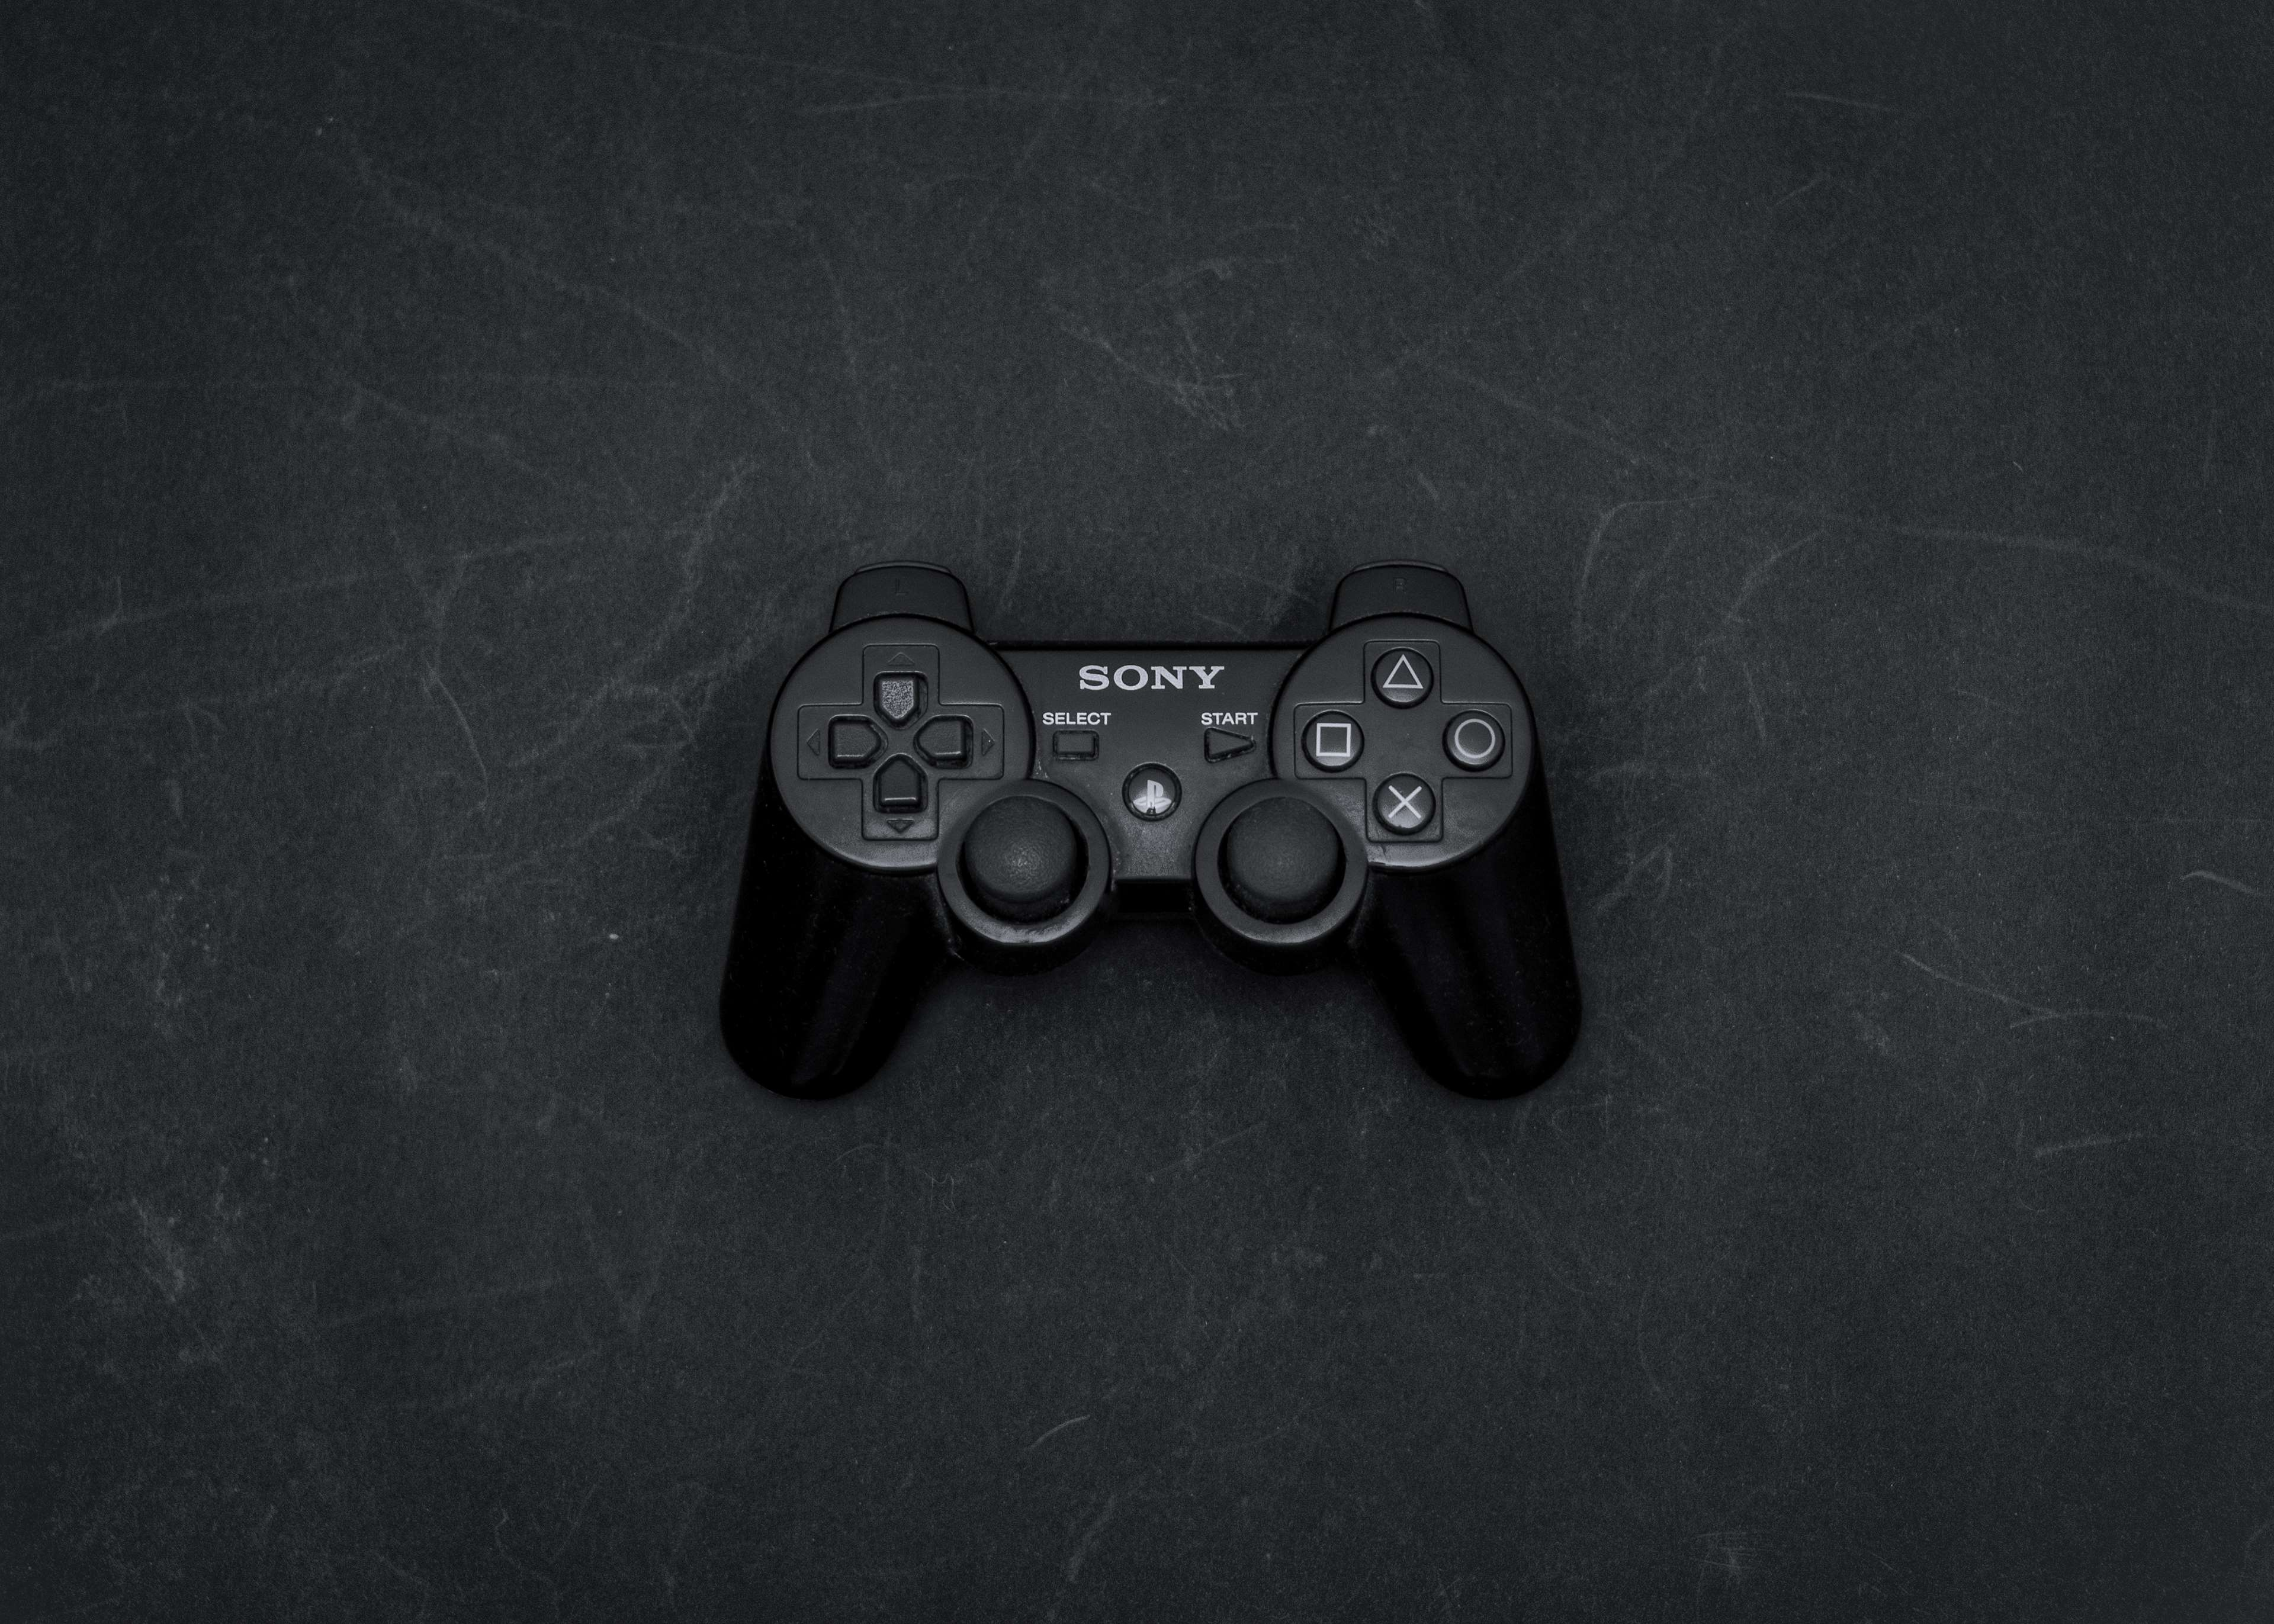 PlayStation Controller Wallpapers - Top Free PlayStation